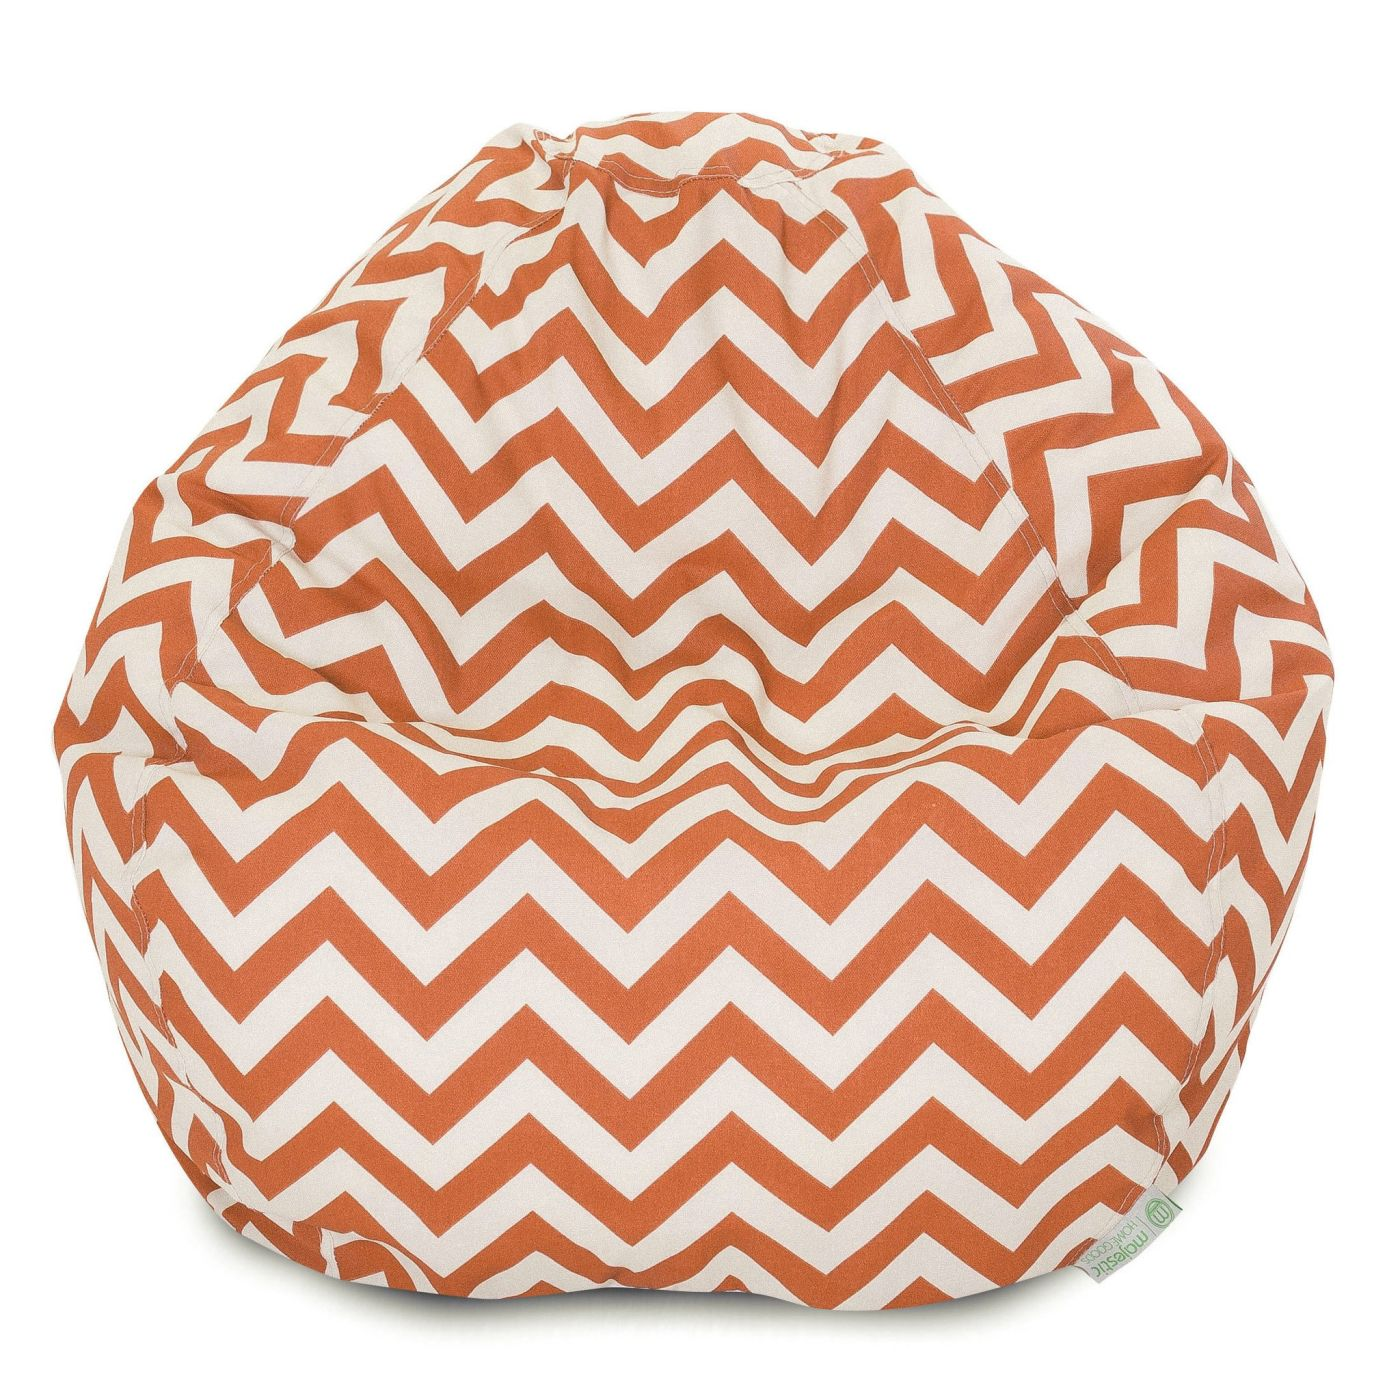 majestic home burnt orange chevron small classic bean bag at contemporary furniture warehouse. Black Bedroom Furniture Sets. Home Design Ideas